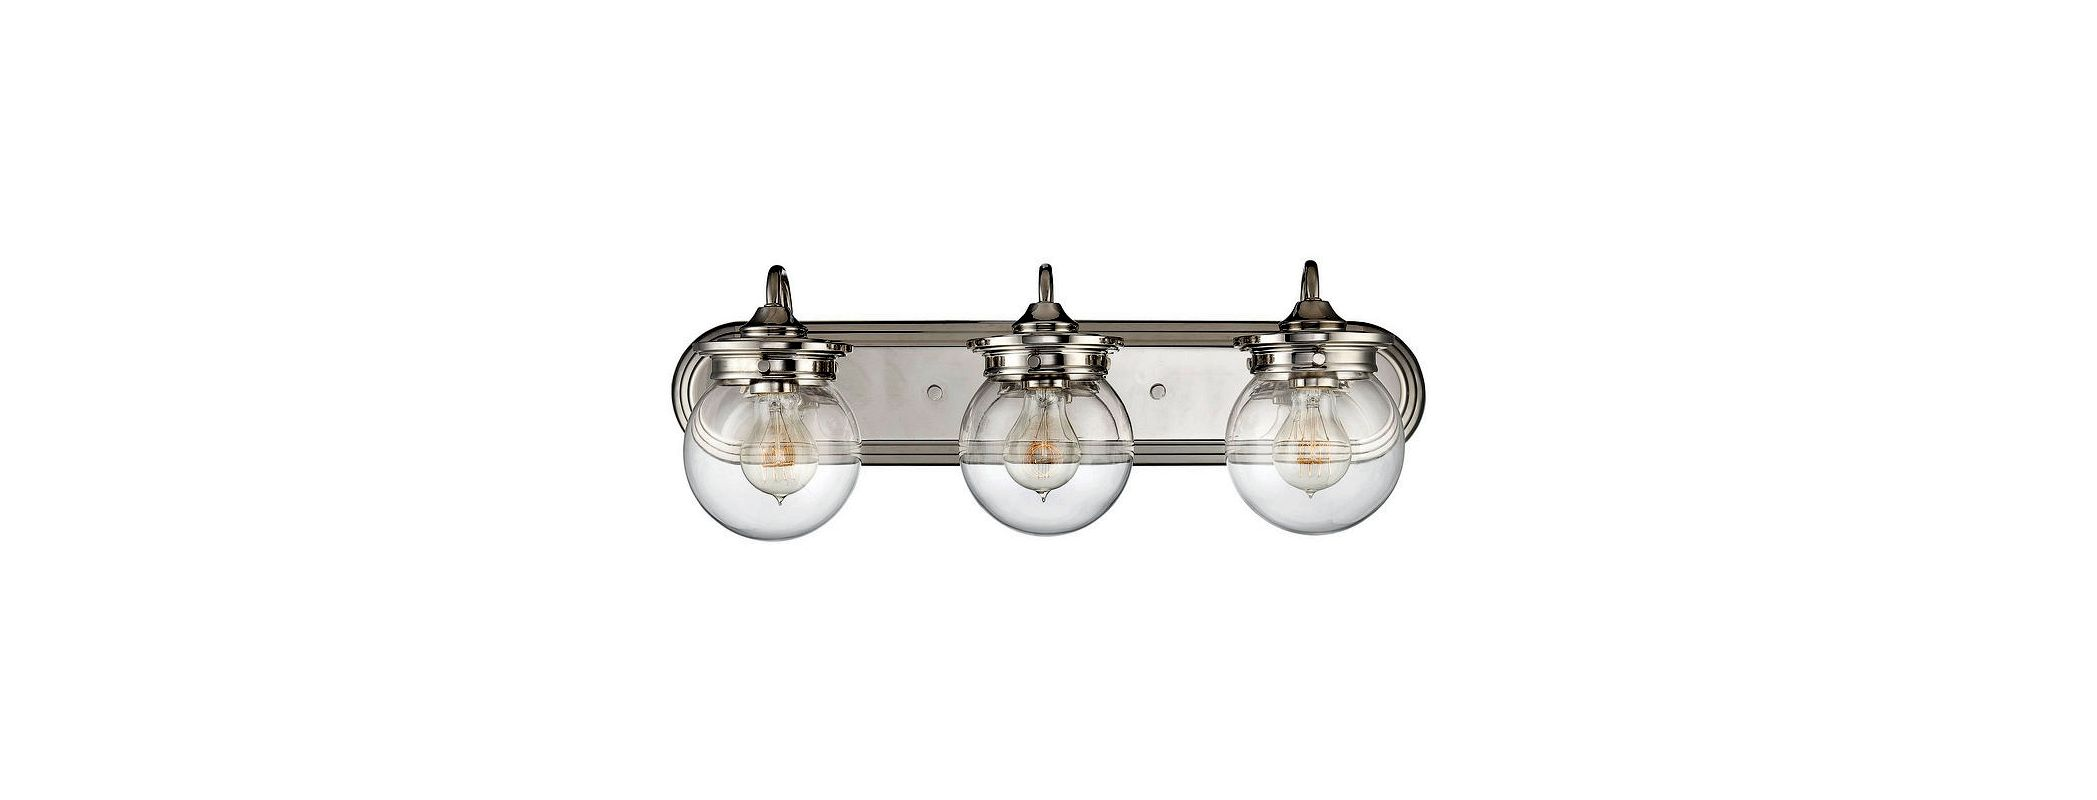 "Savoy House 8-232-3 Downing 24"" Wide 3 Light Bathroom Vanity Light"